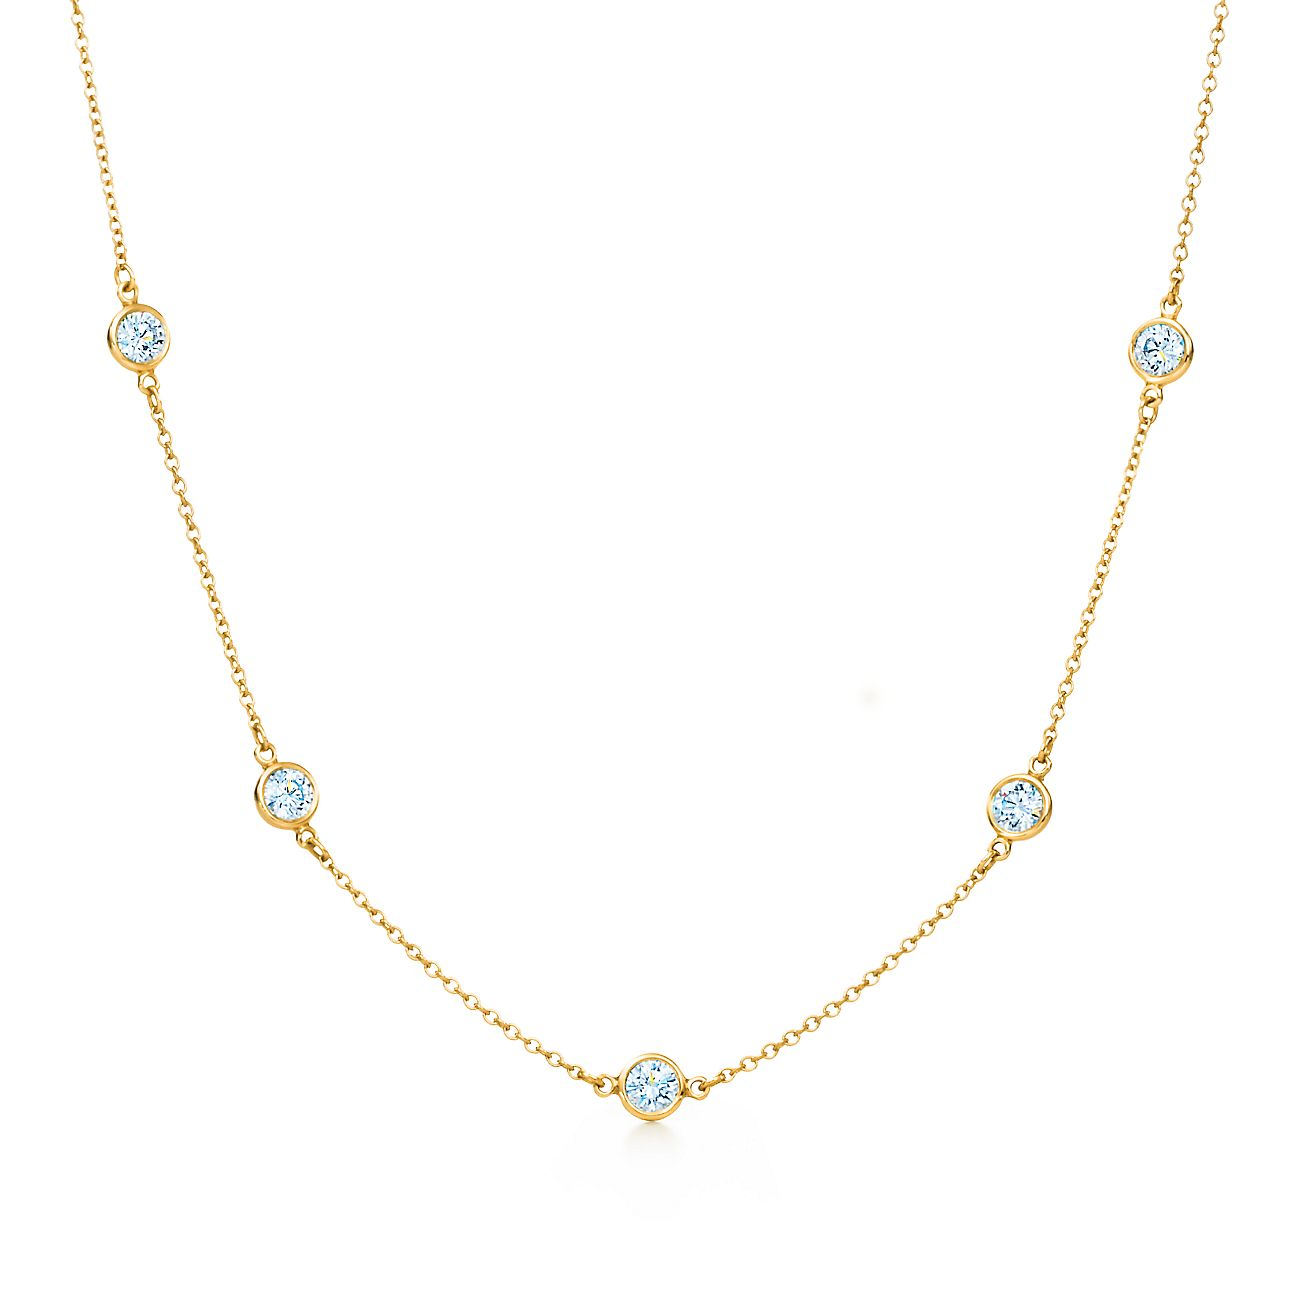 elsa peretti174 diamonds by the yard174 necklace in 18k gold